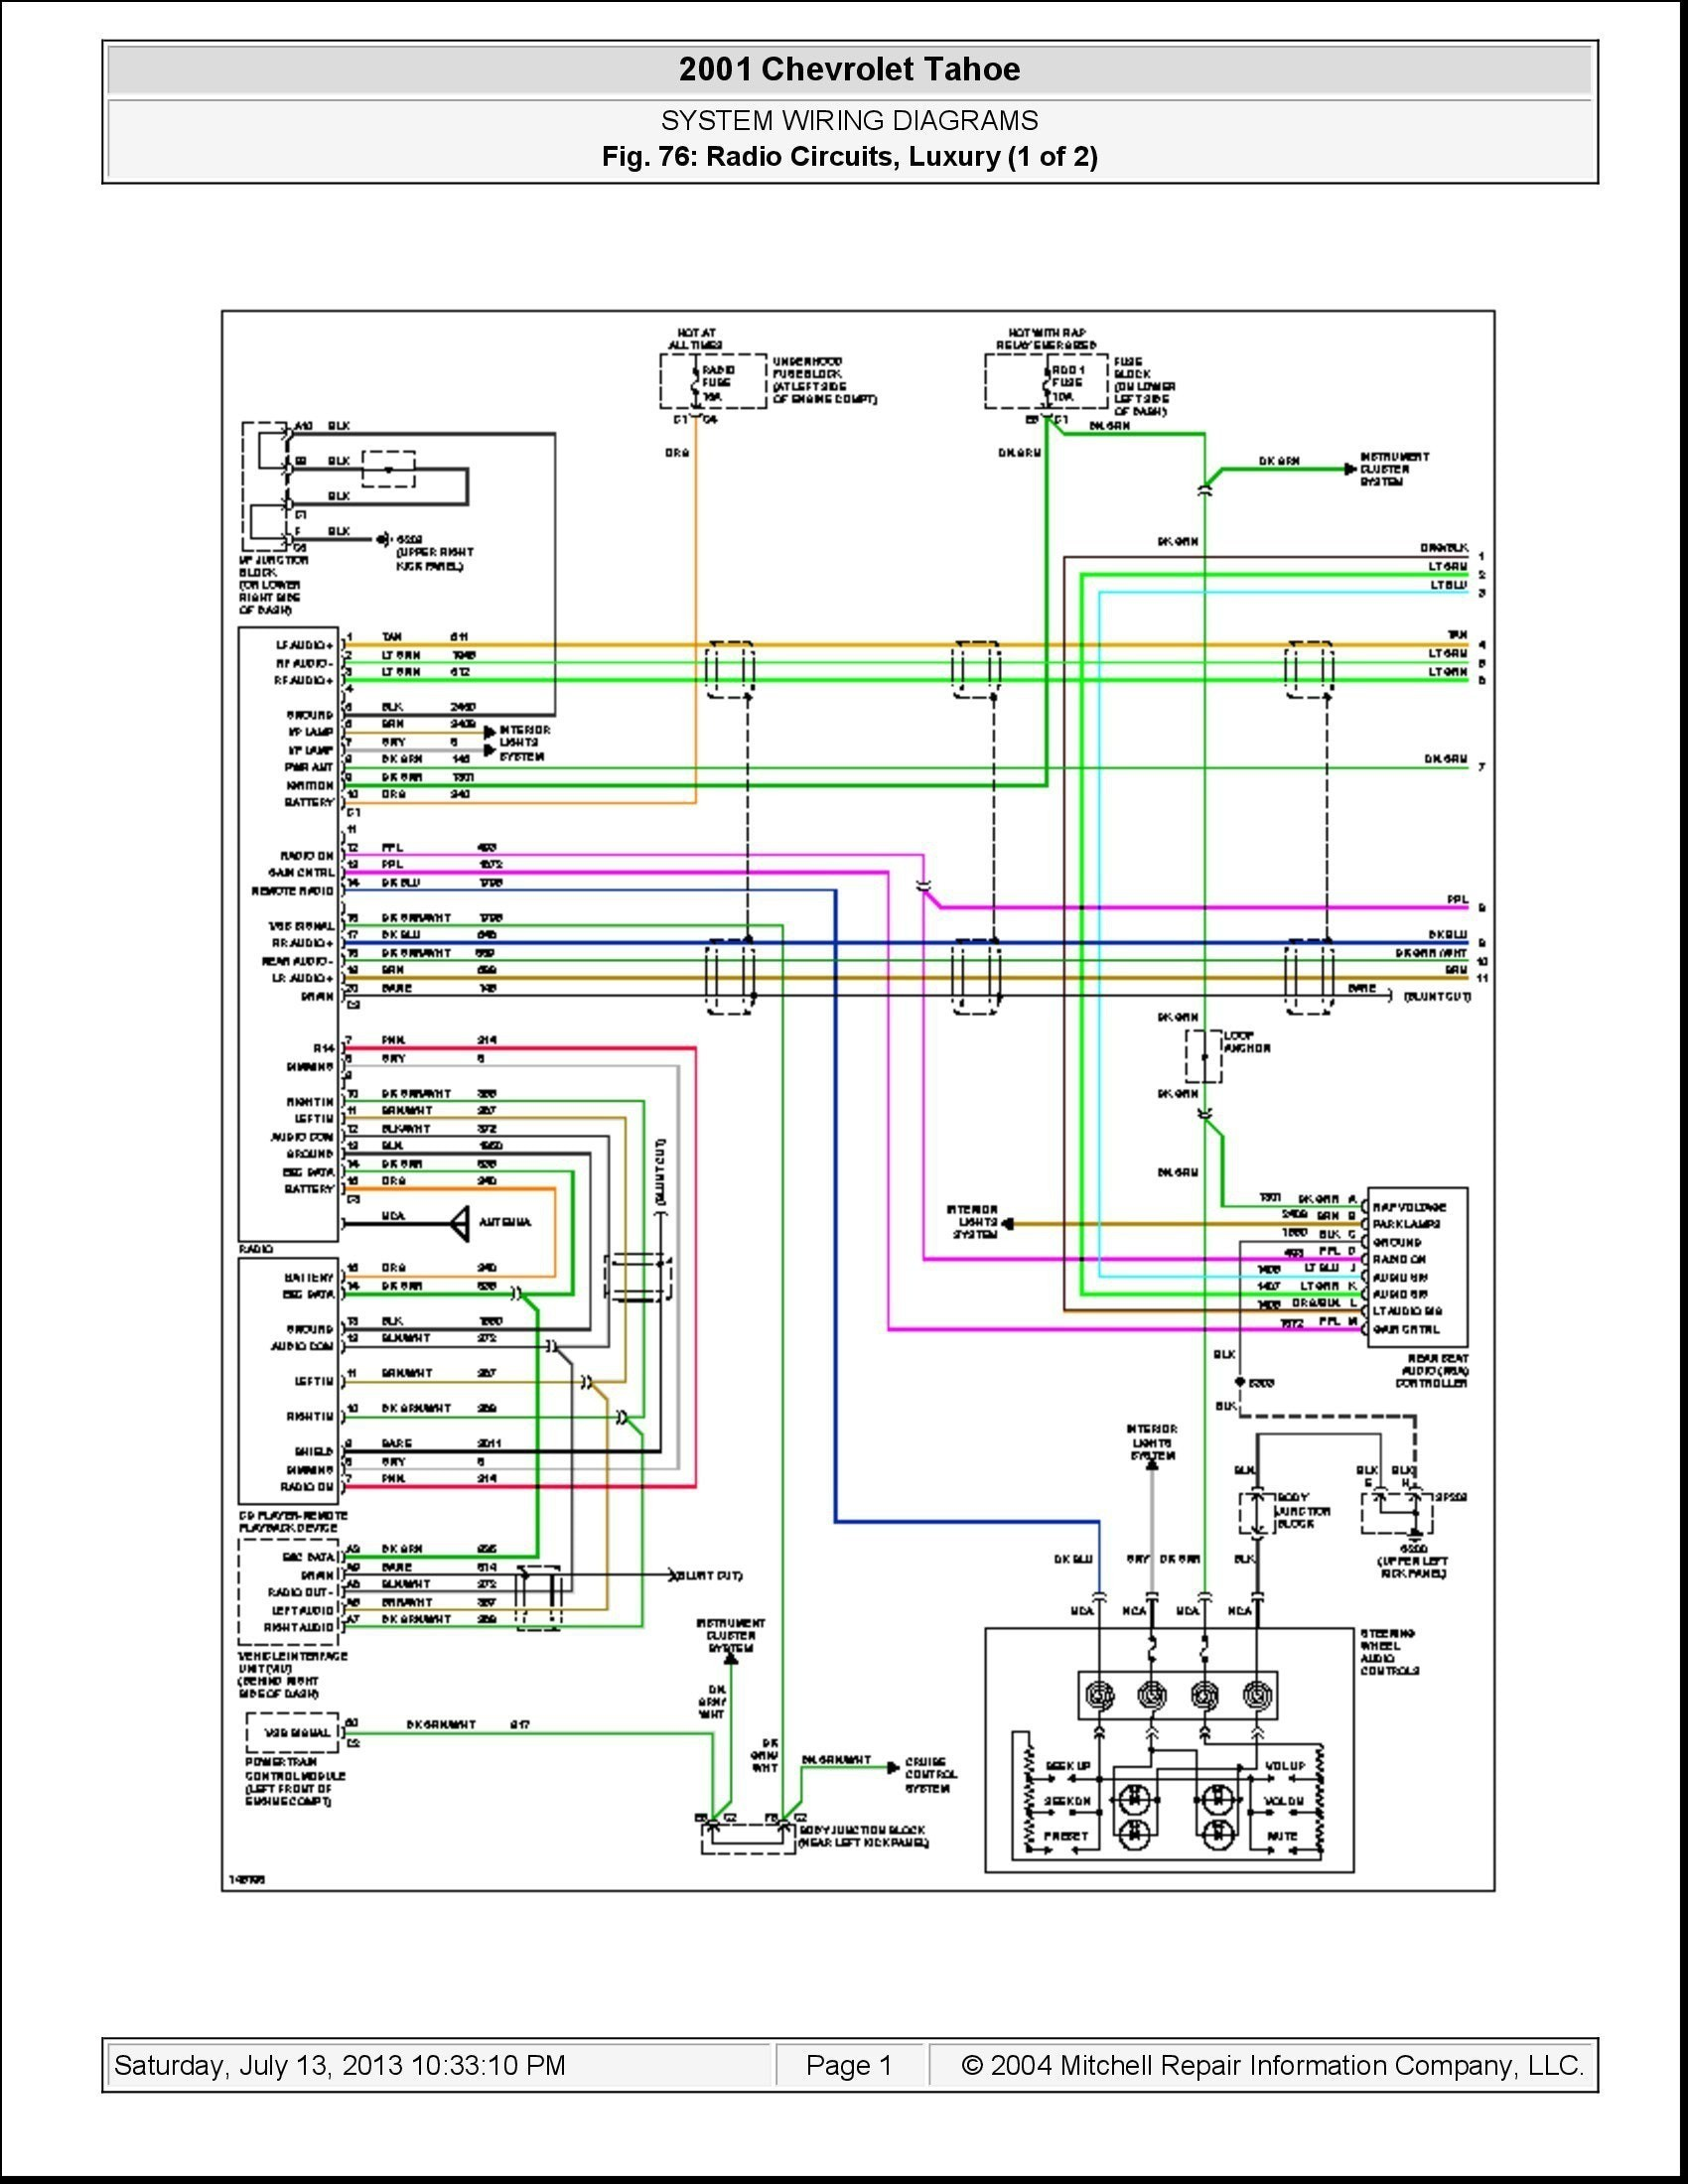 ZY_7595] Radio Wiring Diagram As Well As Chevy Silverado Radio Wiring  Harness Free DiagramIcal Perm Sple Hendil Mohammedshrine Librar Wiring 101